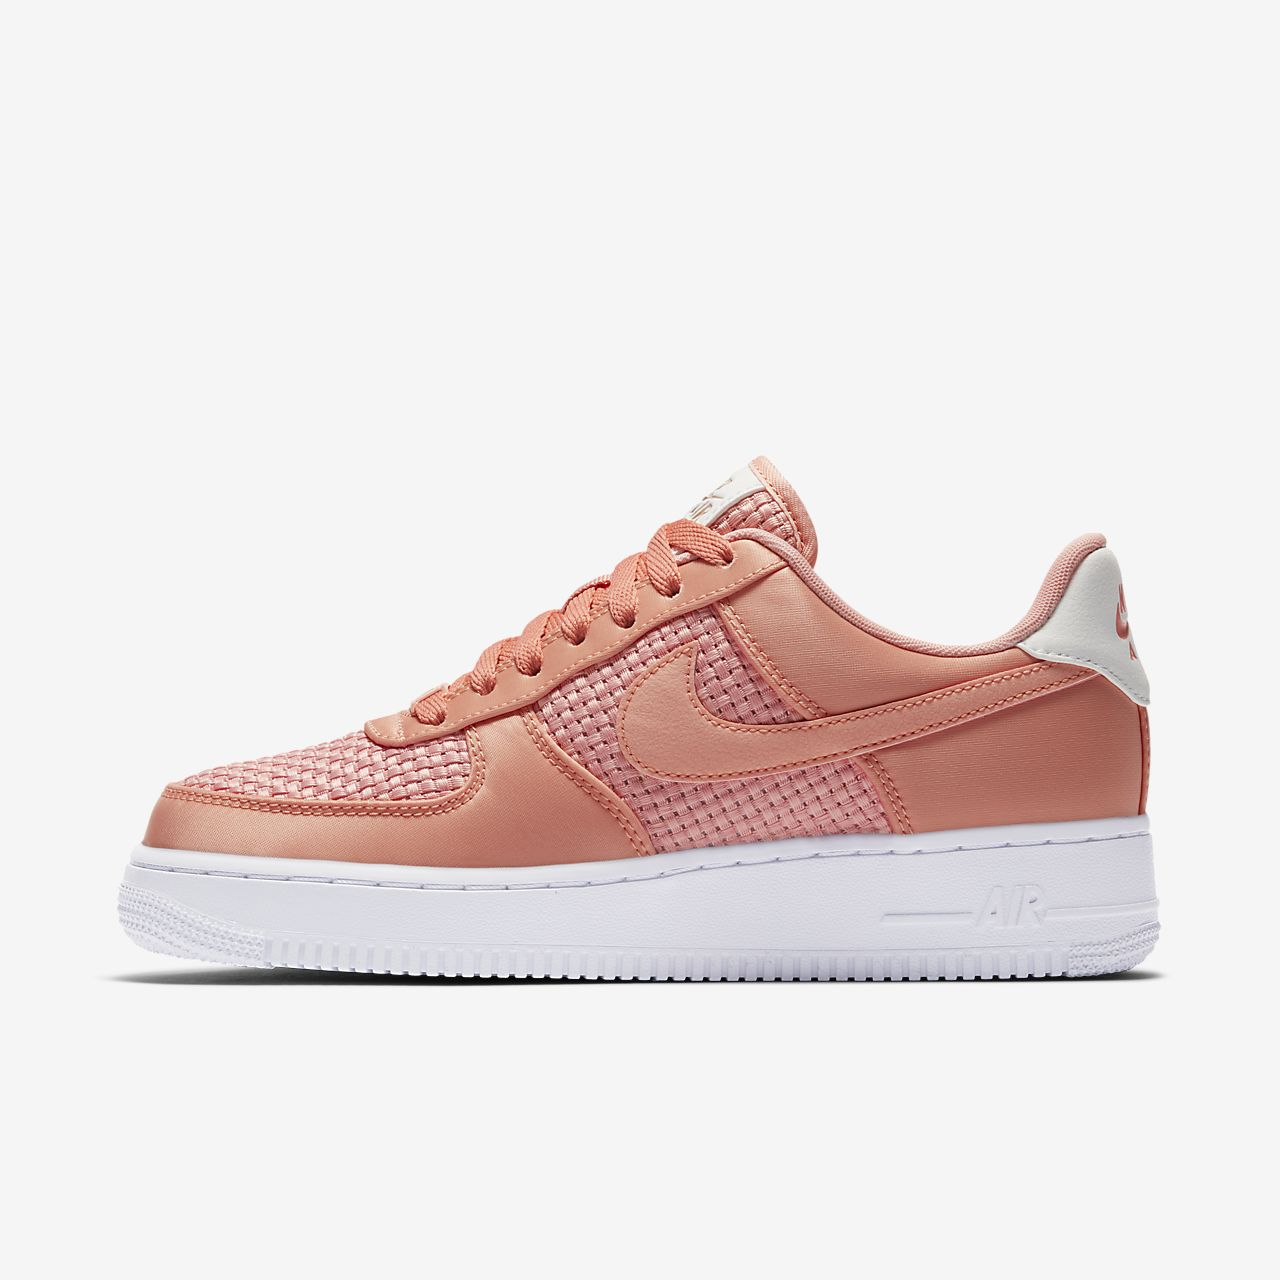 nike air force damskie 1